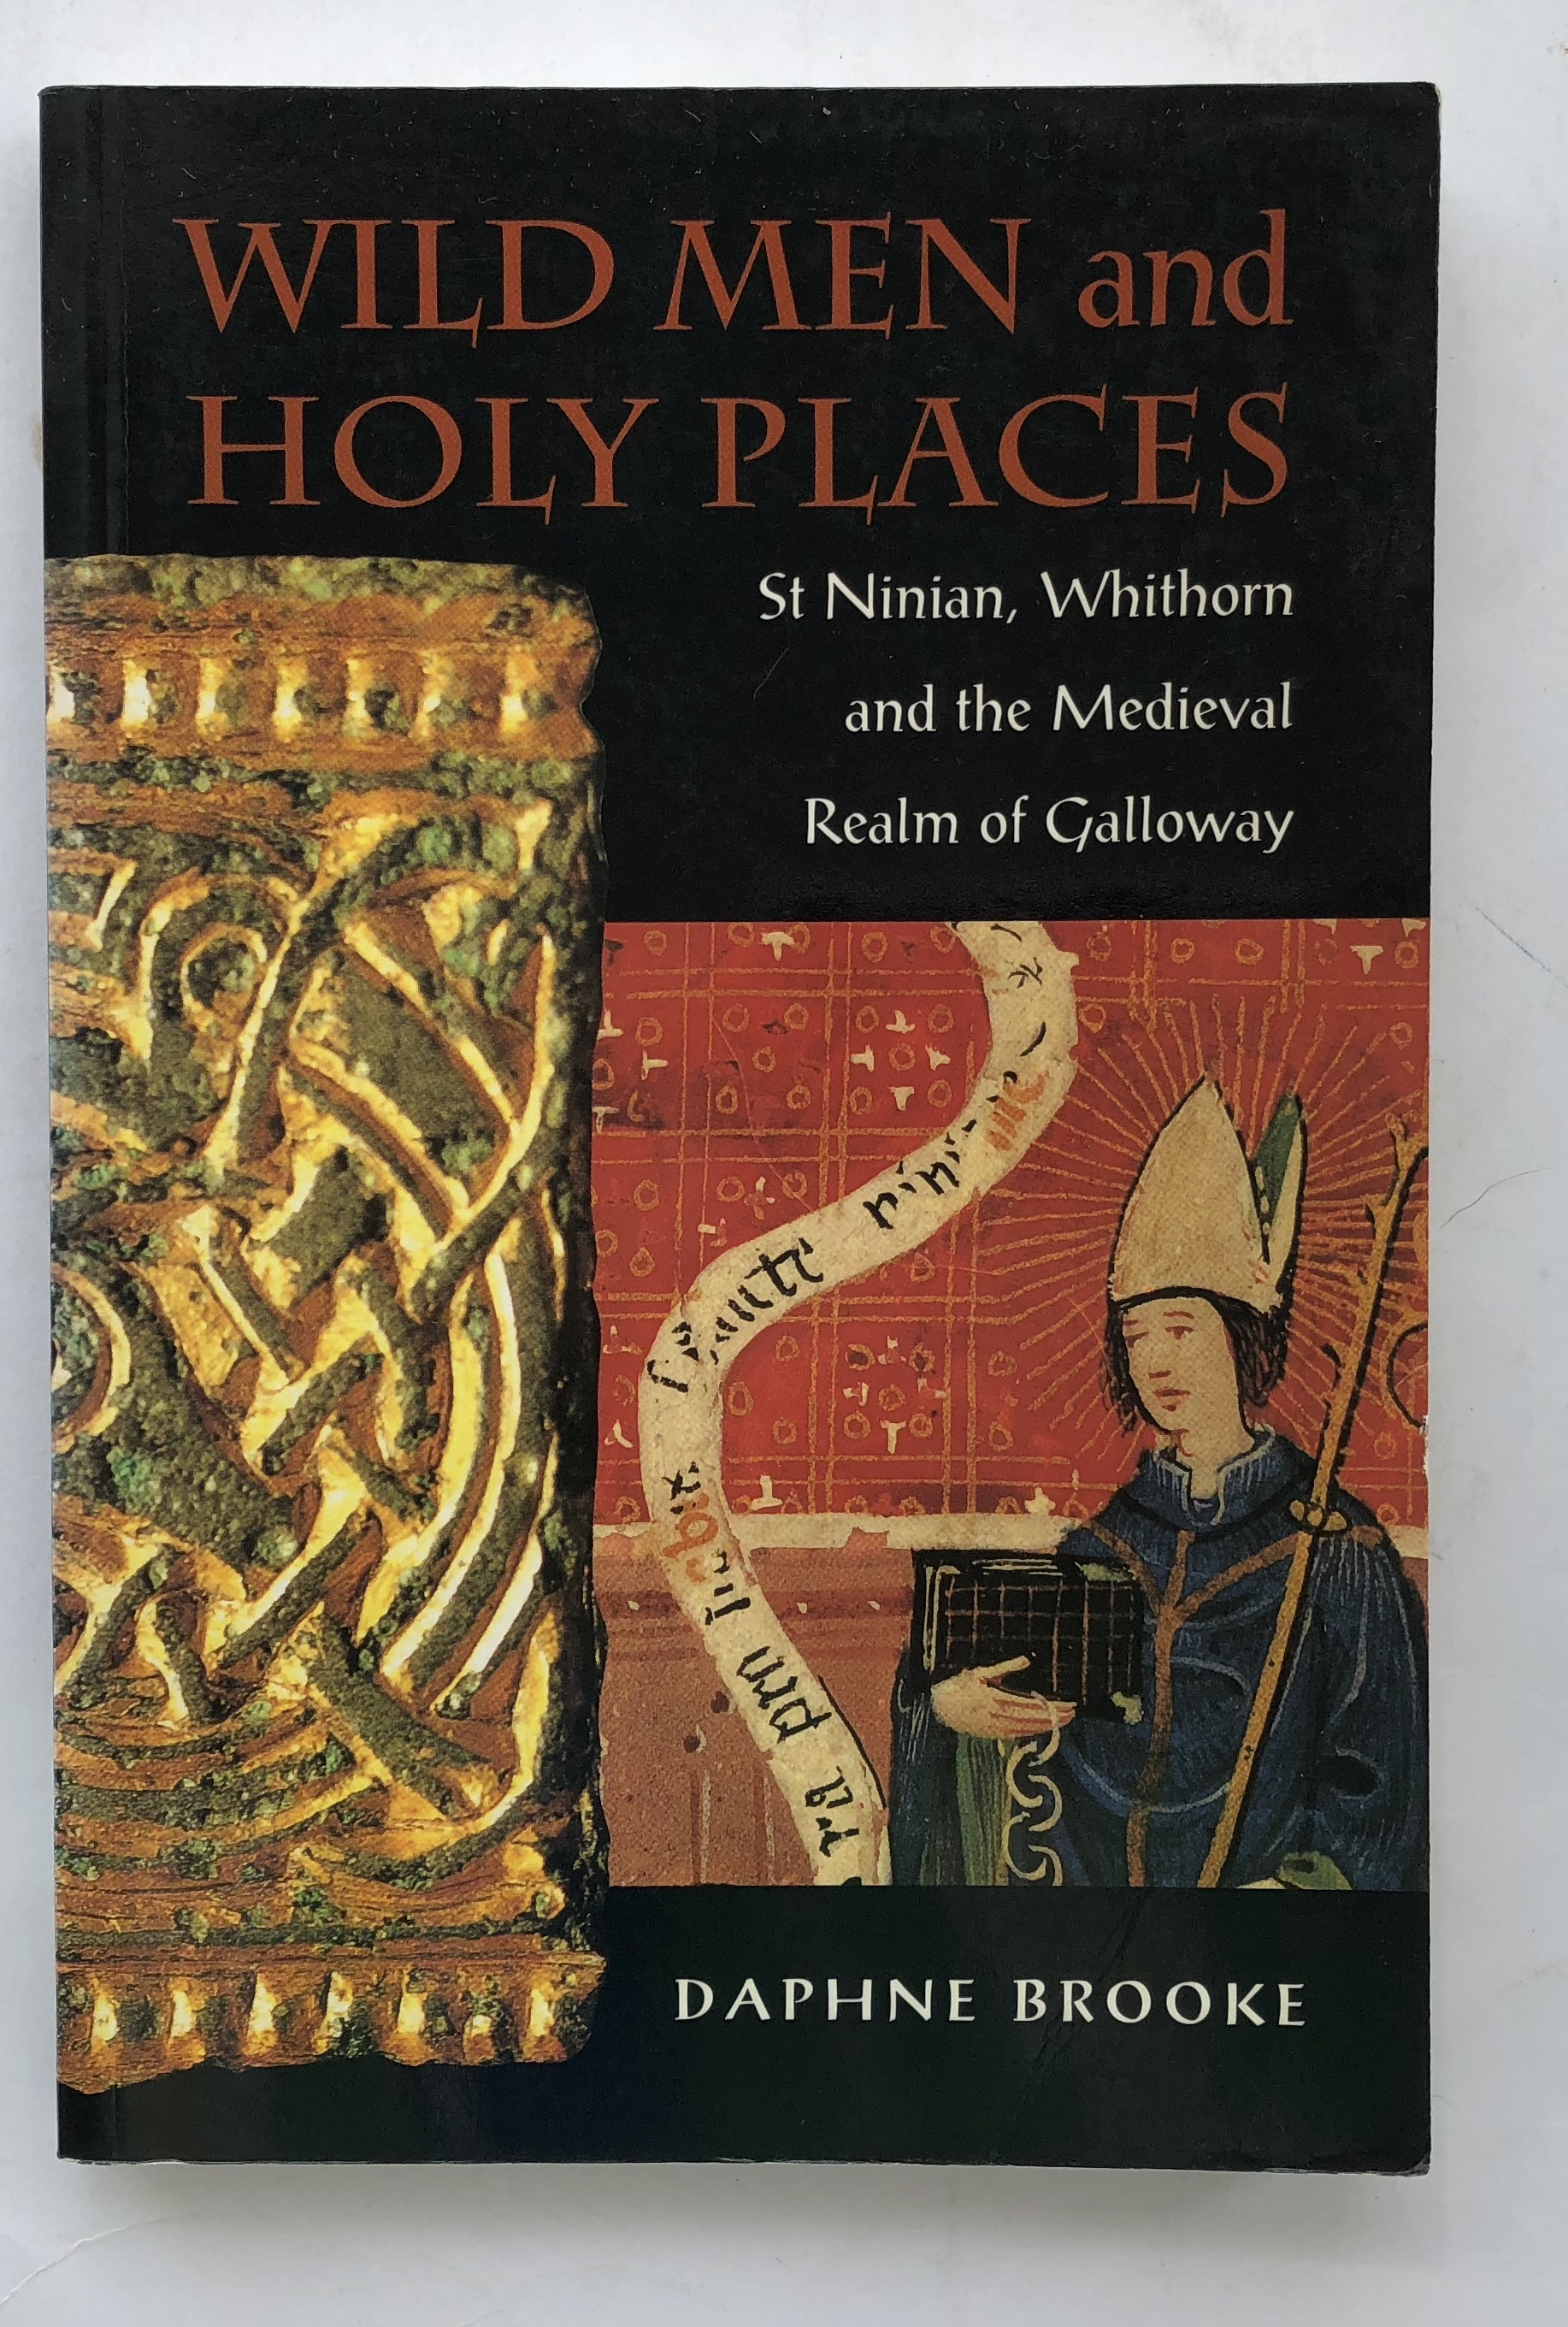 WILD MEN AND HOLY PLACES: :St Ninian, Whithorn and the Medieval Realm of Galloway